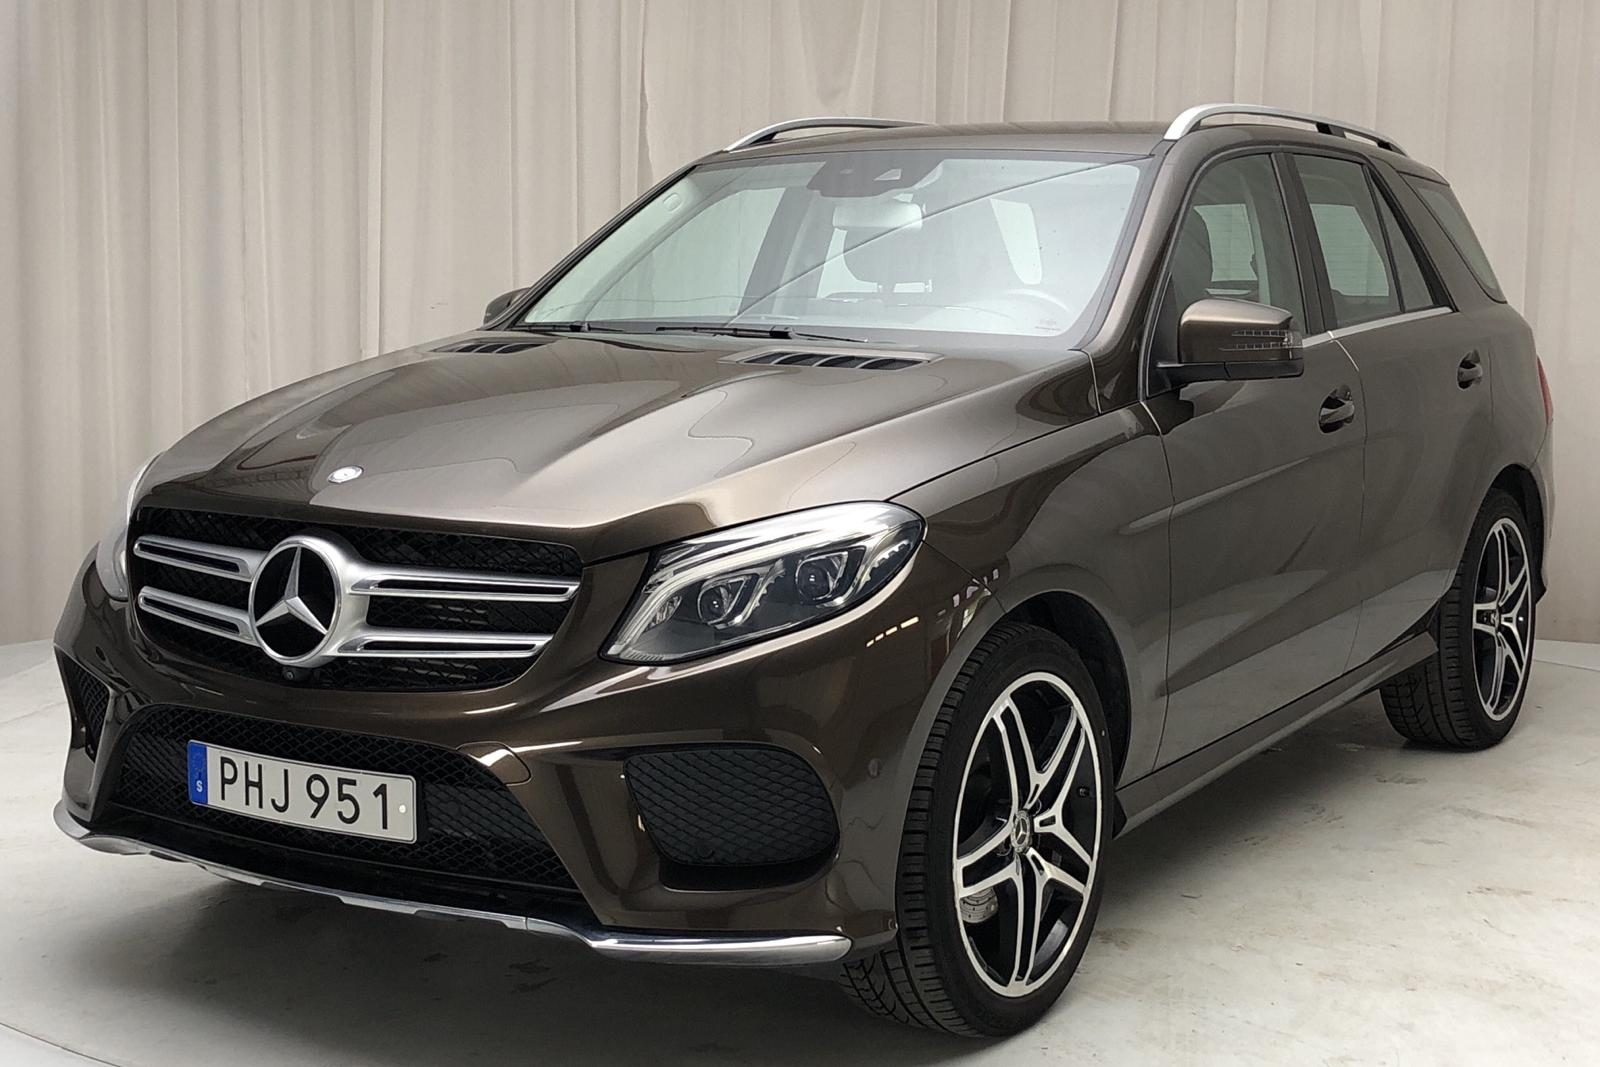 Mercedes GLE 350 d 4MATIC W166 (258hk) - 4 780 mil - Automat - Dark Brown - 2017